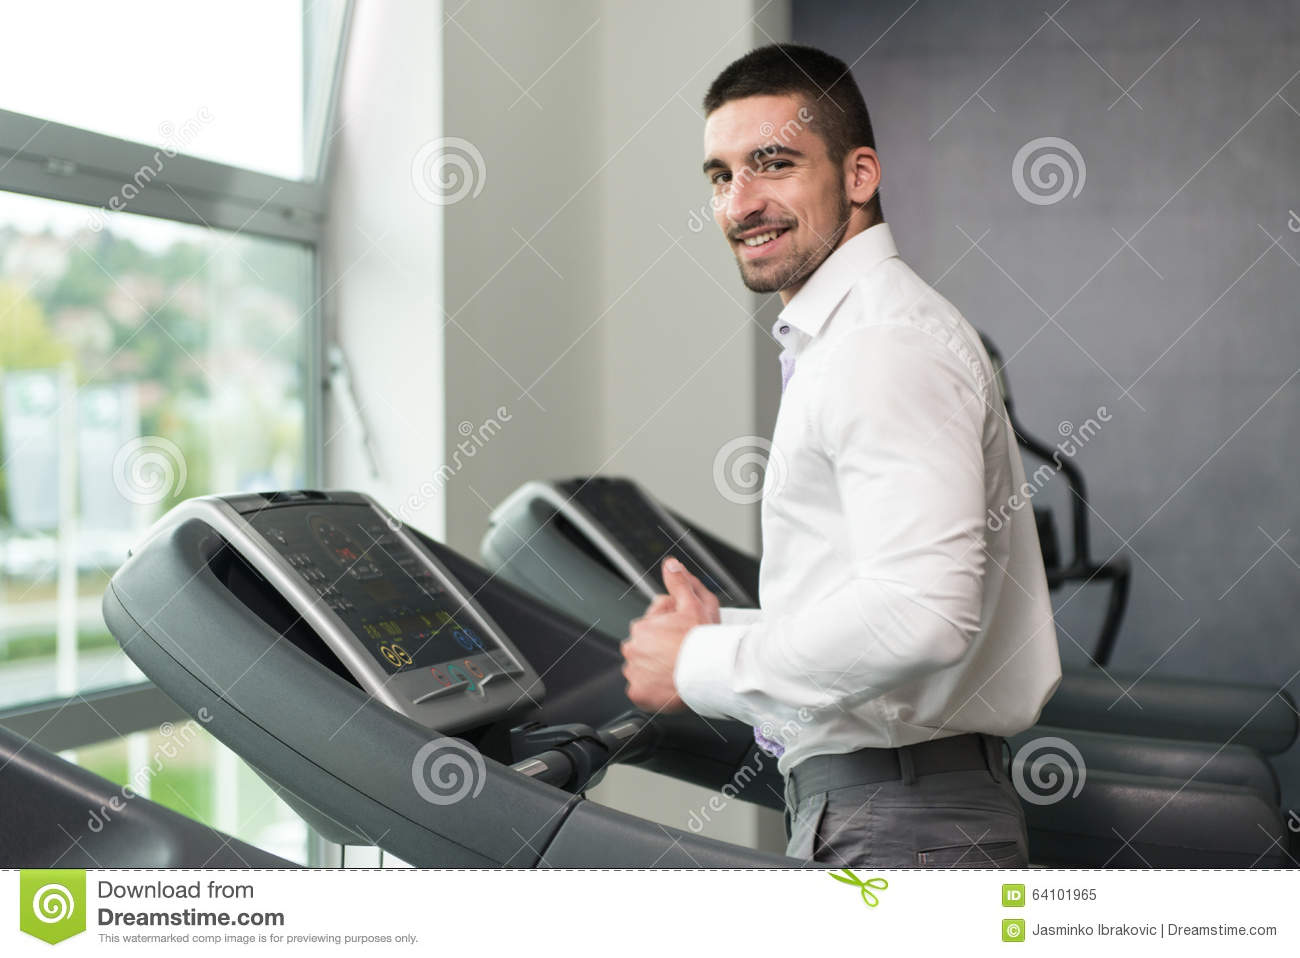 Homme d affaires Running On Treadmill dans le gymnase